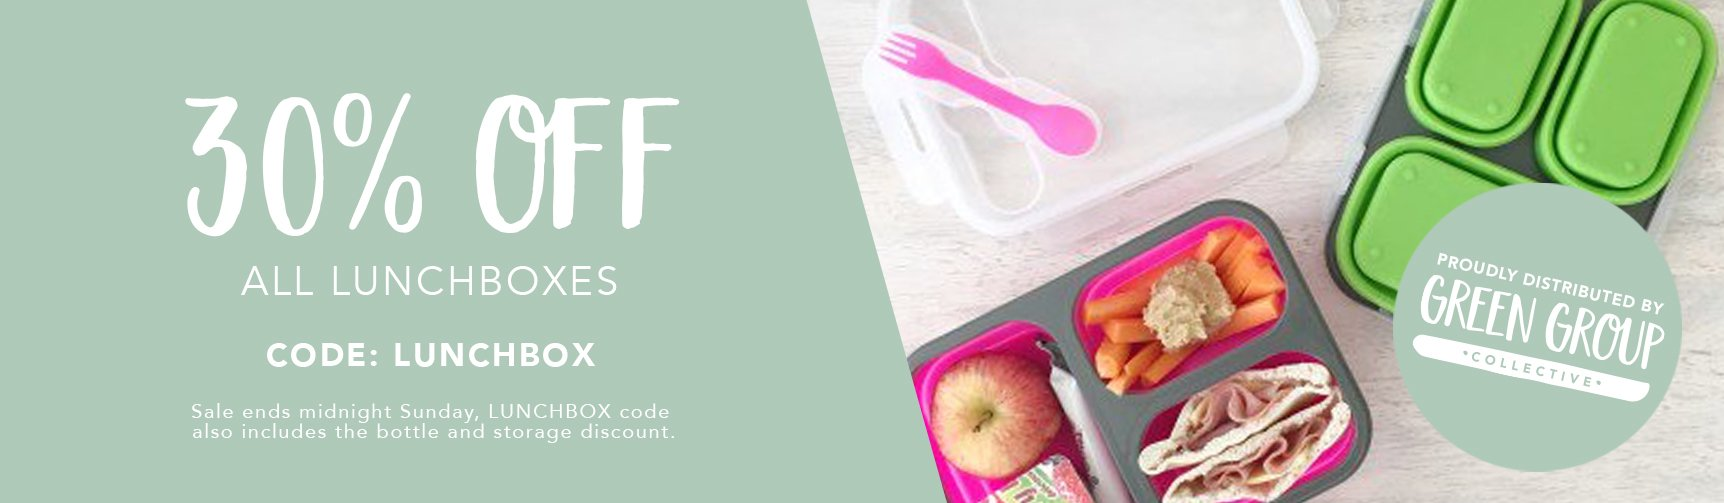 Get 30% off all Lunchboxes today